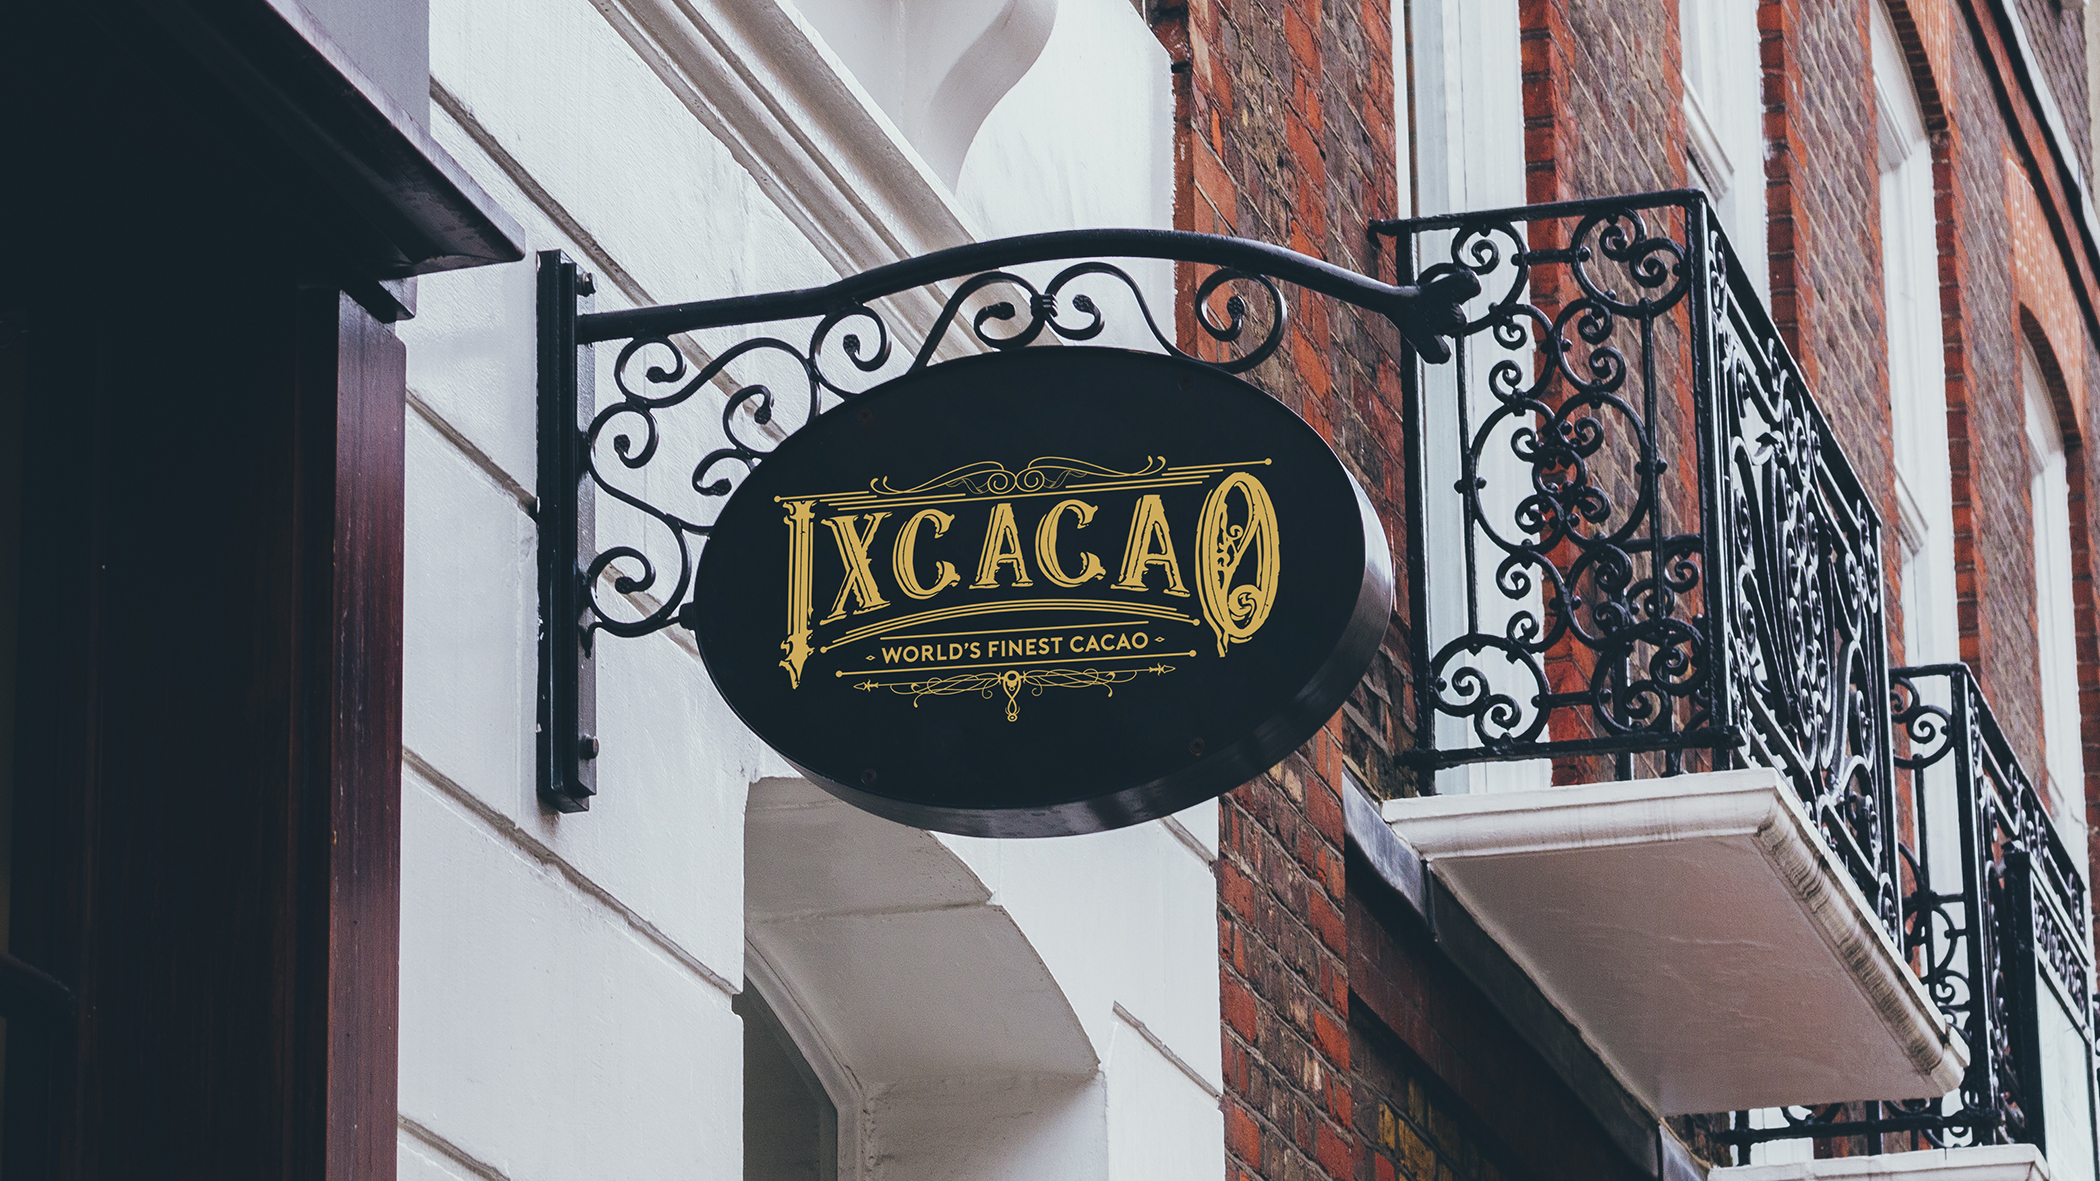 IXCACAO Chocolate Cafe